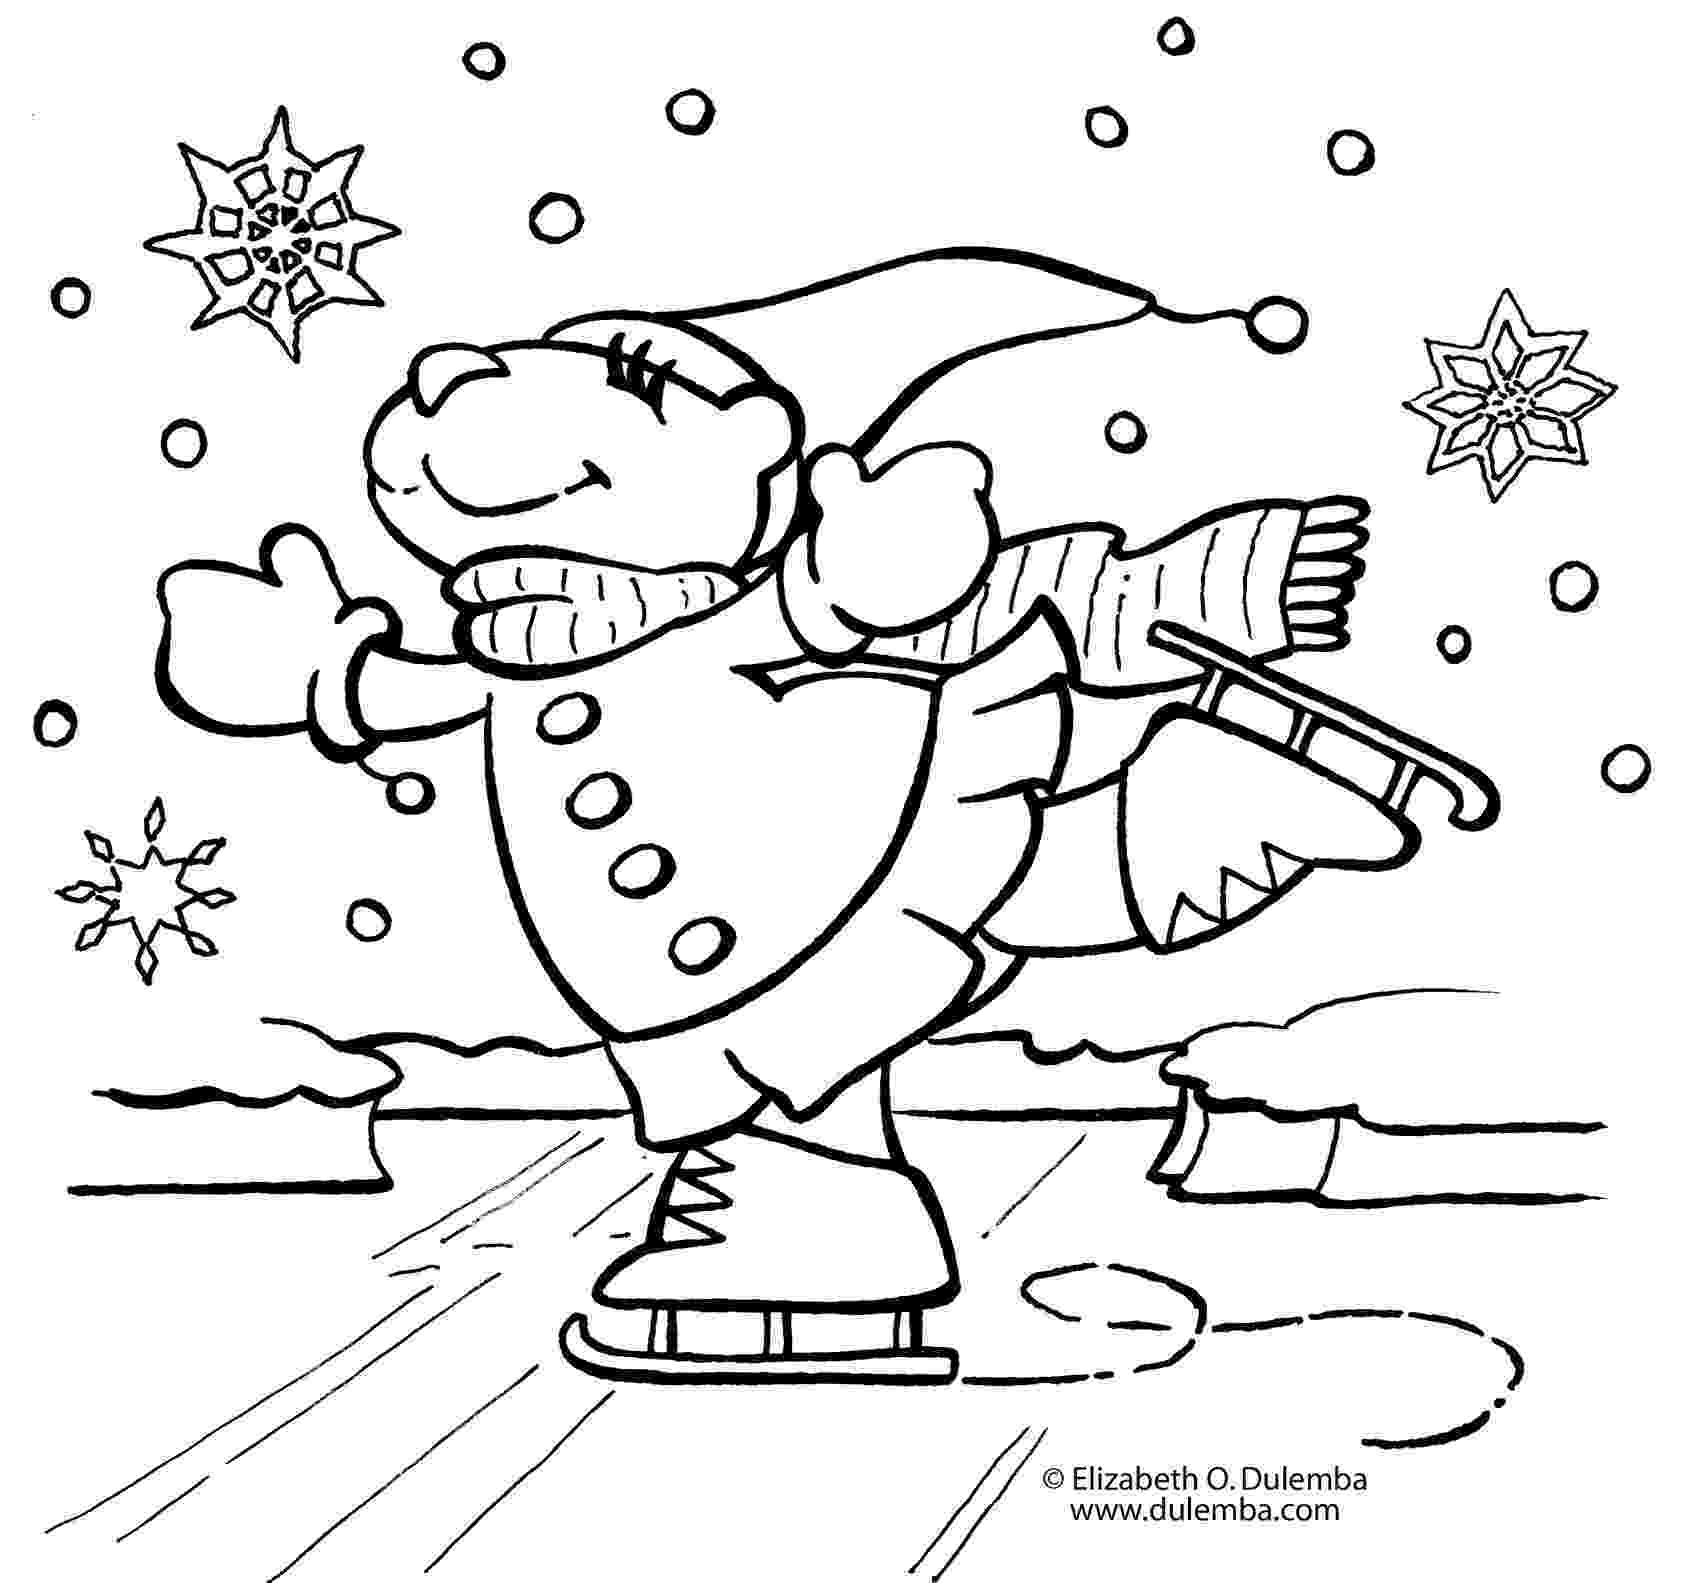 winter printable coloring pages winter season coloring pages crafts and worksheets for coloring printable winter pages